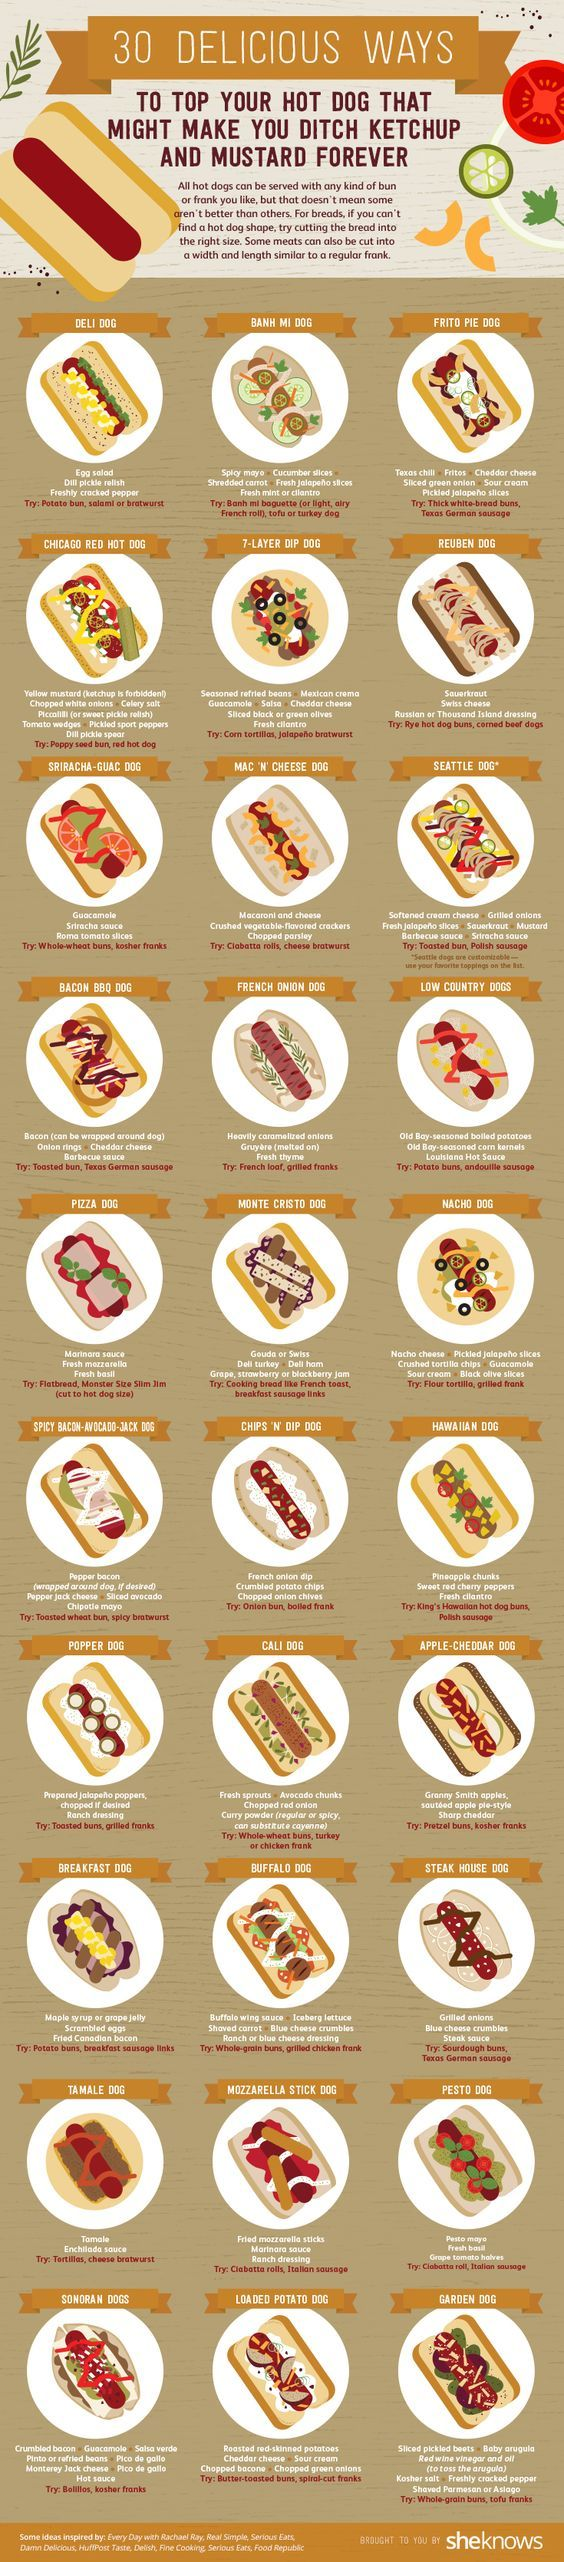 Frankfurter Küchenbibel Die Ultimative Rezeptsammlung These Extras Will Take Your Hot Dog From Classic To Gourmet | Cookout Food, Hot Dog Recipes, Hot Dog Toppings